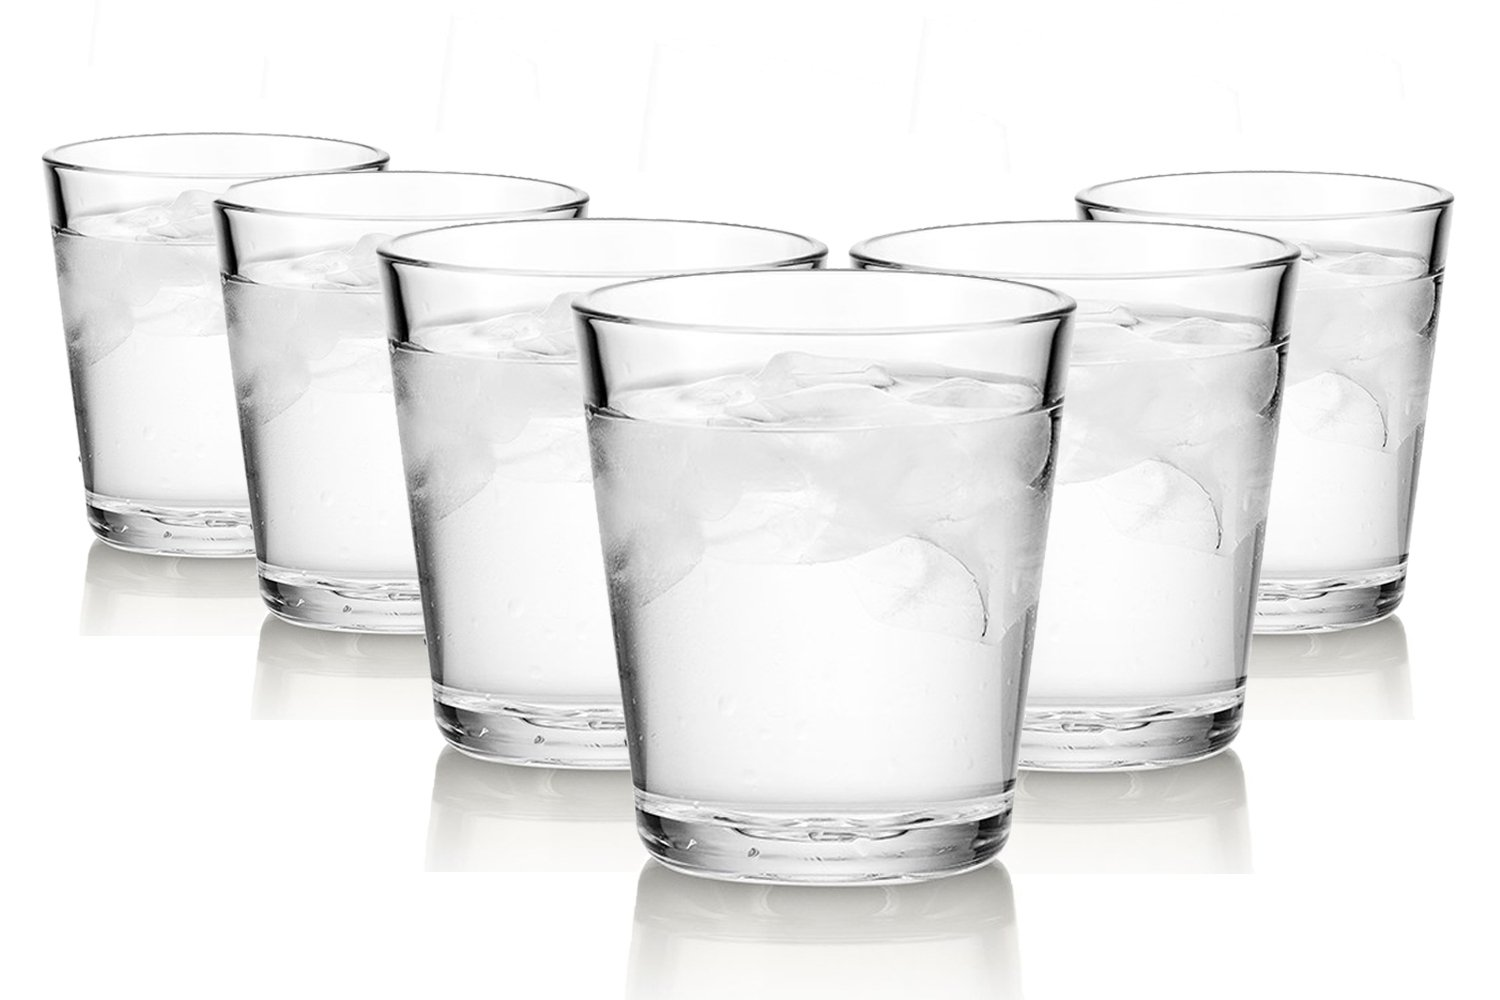 Arc Basic Waterglasses/250 ml/Set of 6/High-quality Glasses/Dishwasher safe/Crystal Glasses